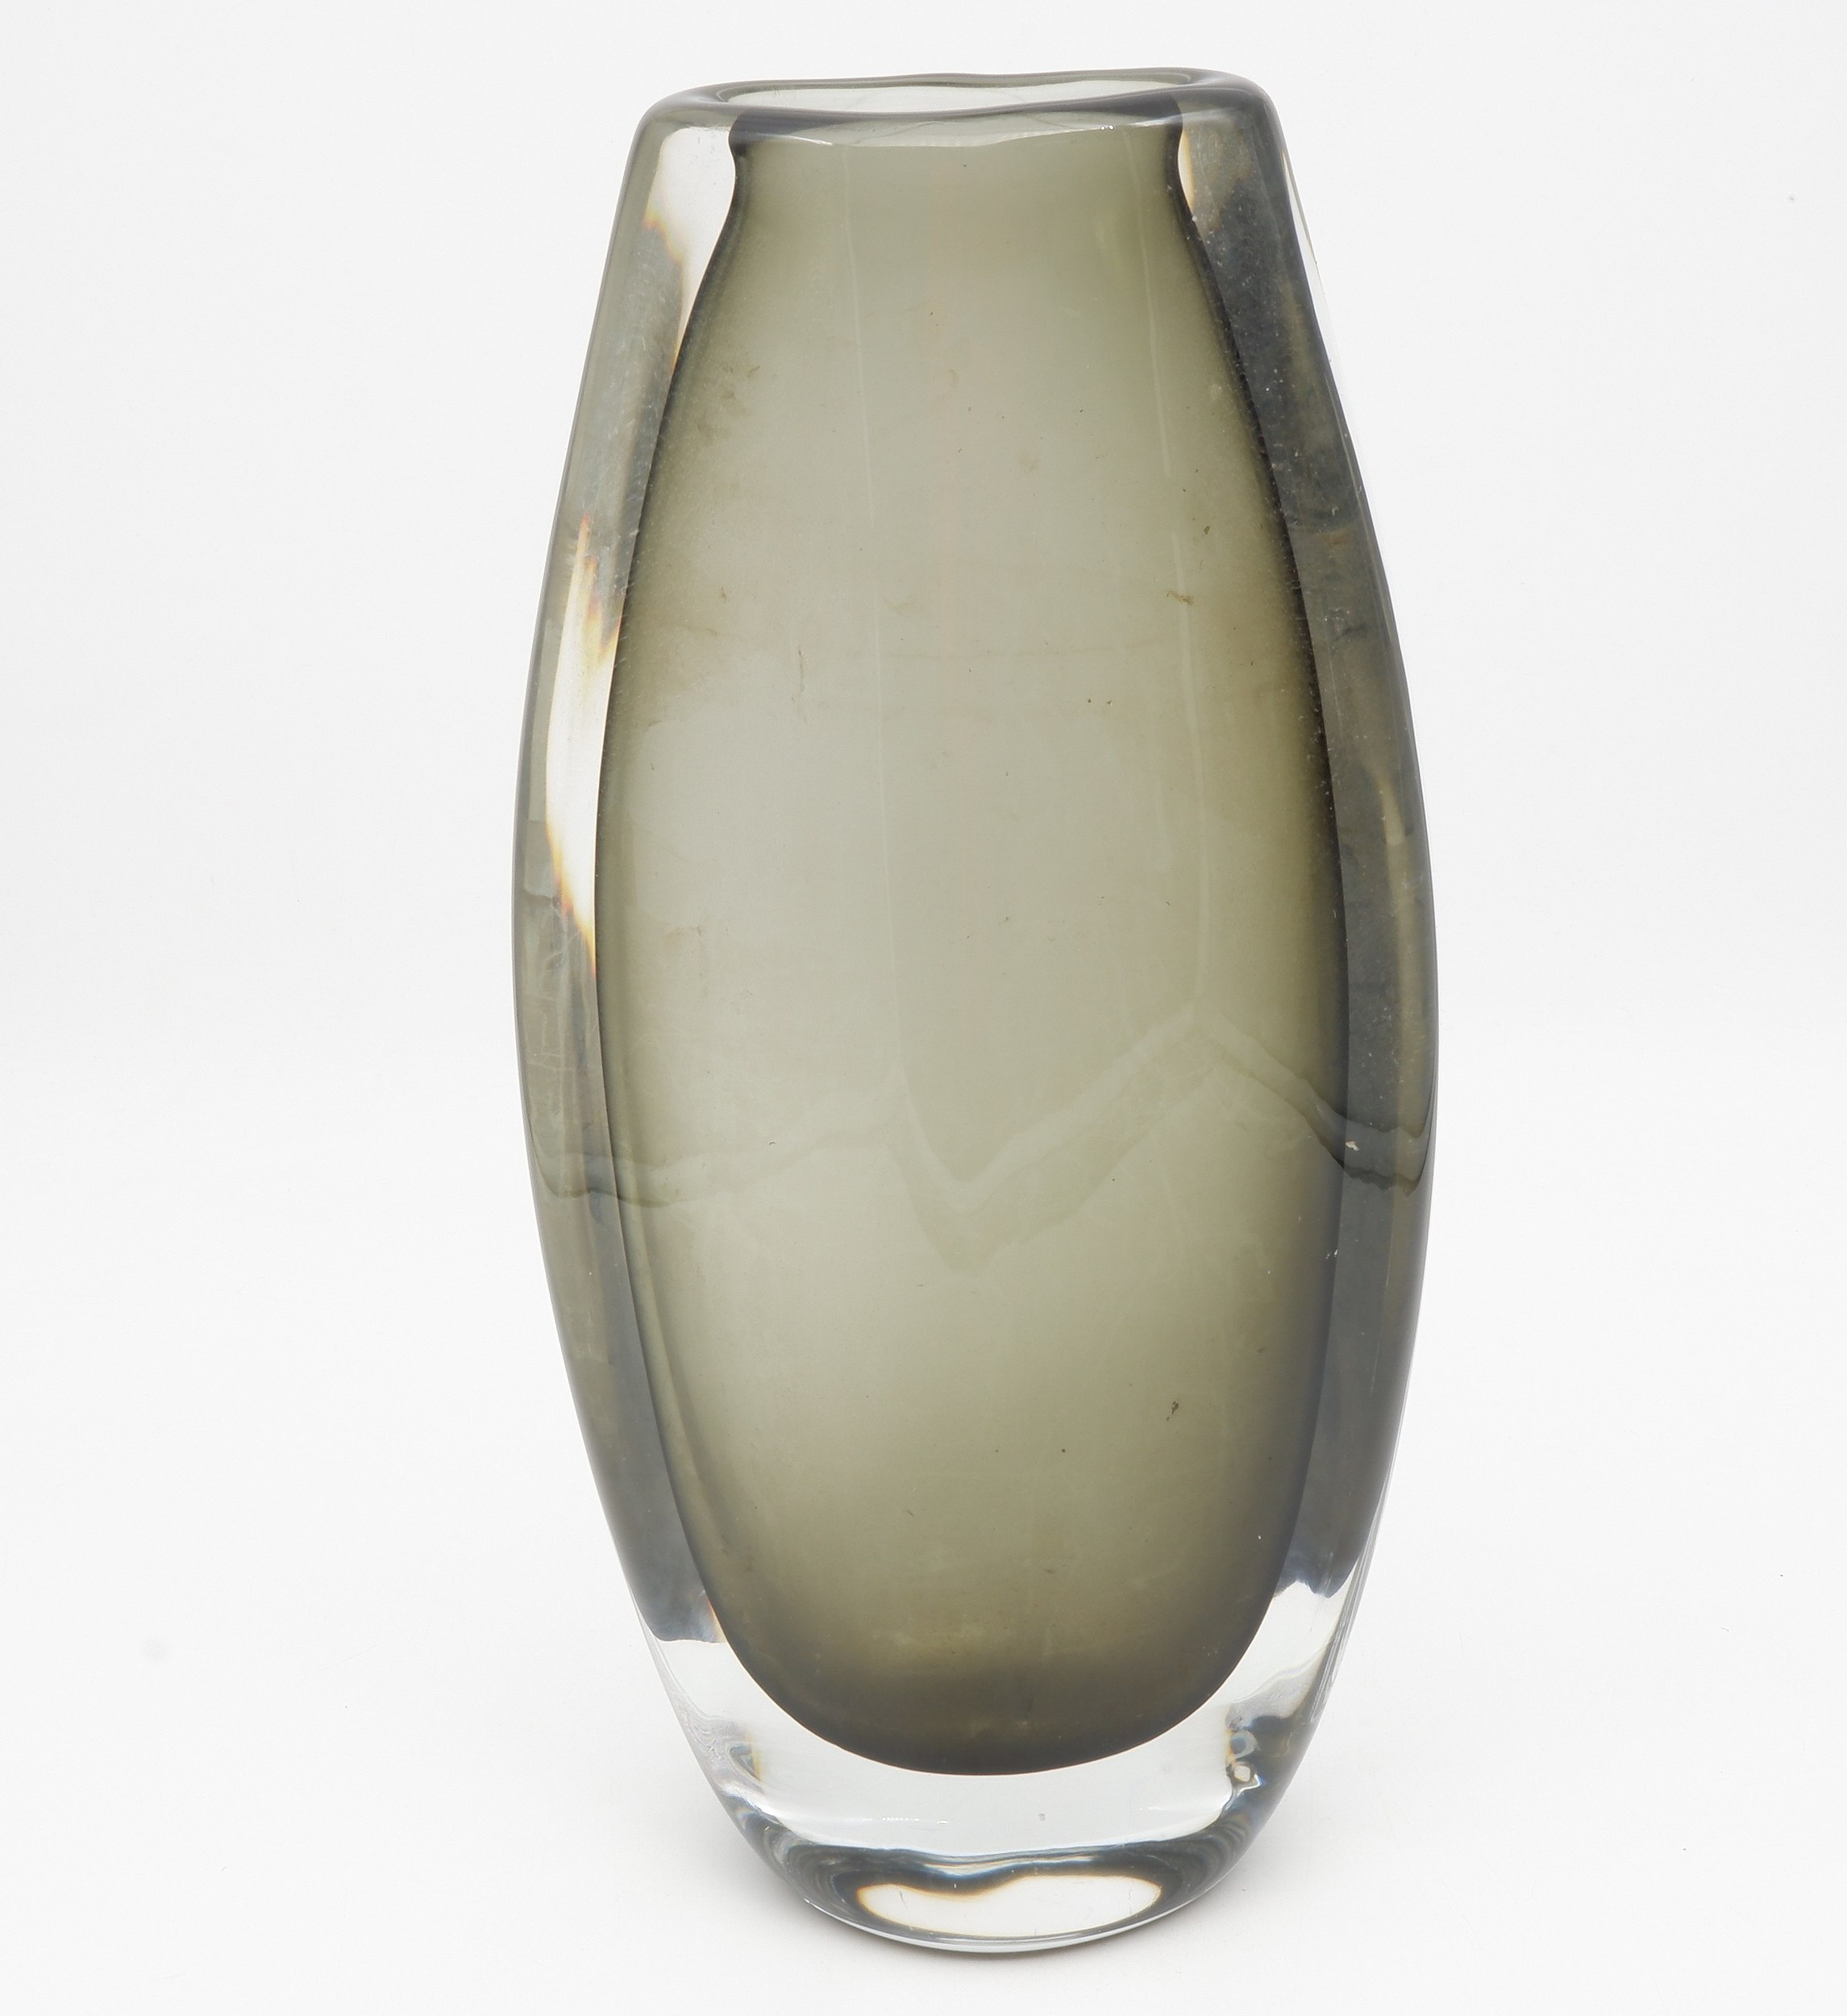 'Tall Grey Hue Orrefors Vase'